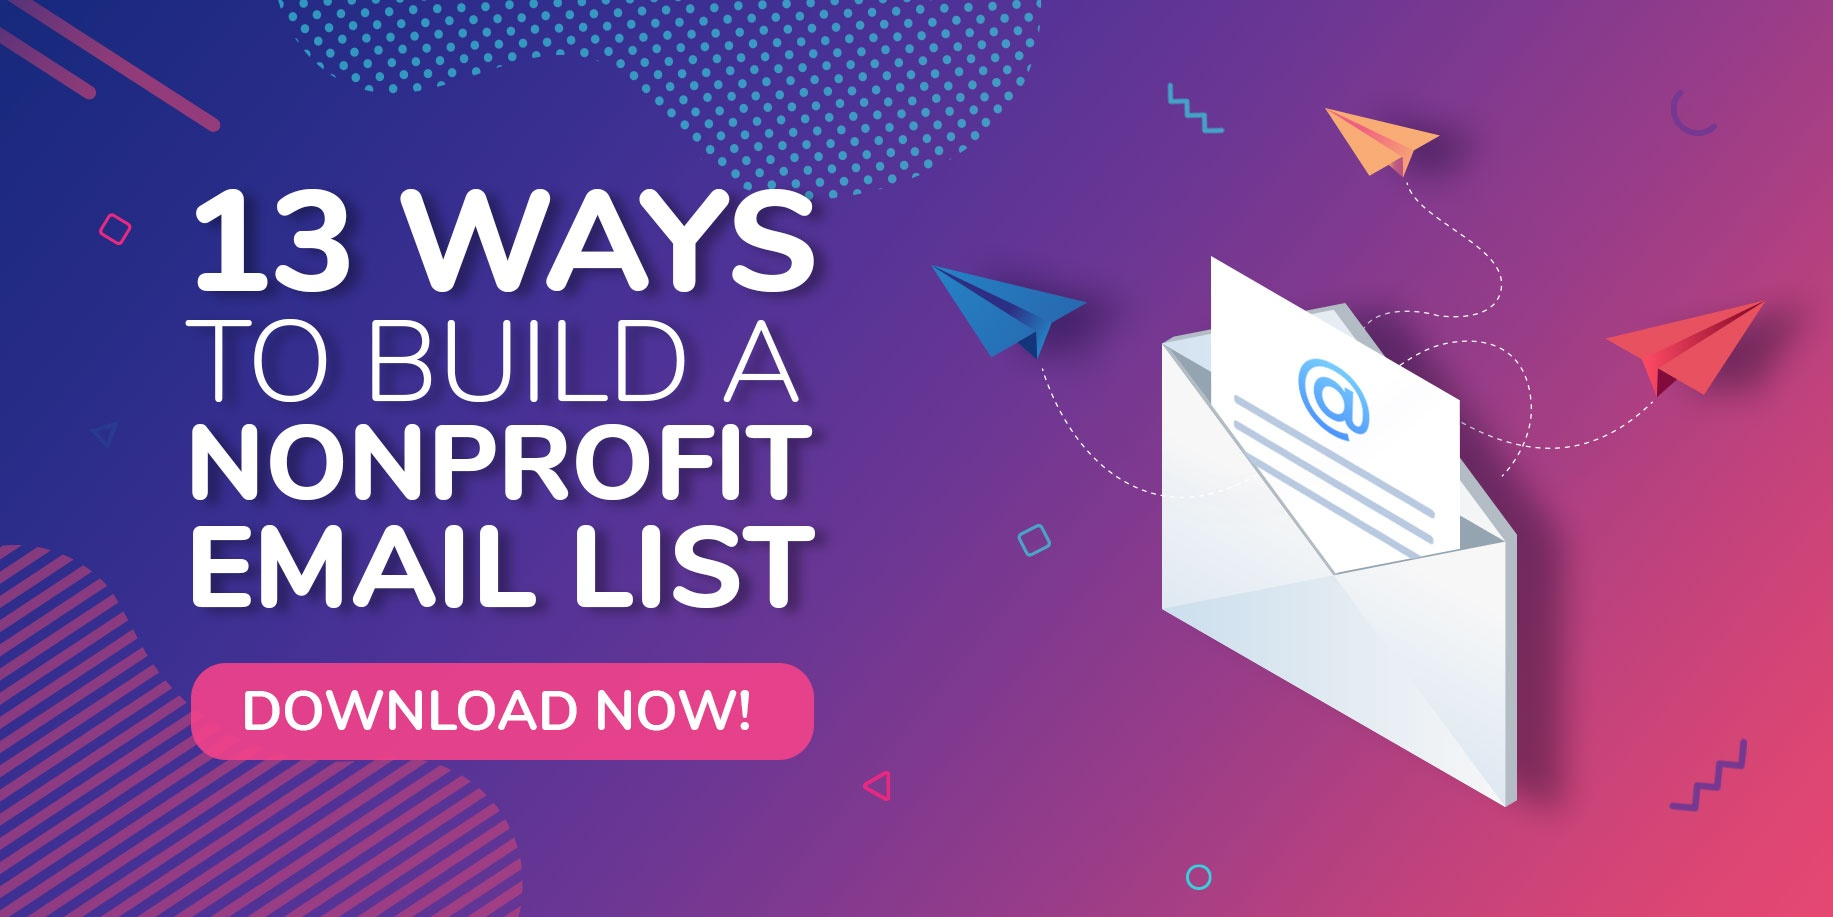 13 Ways Nonprofits Can Build an Email List Download Button